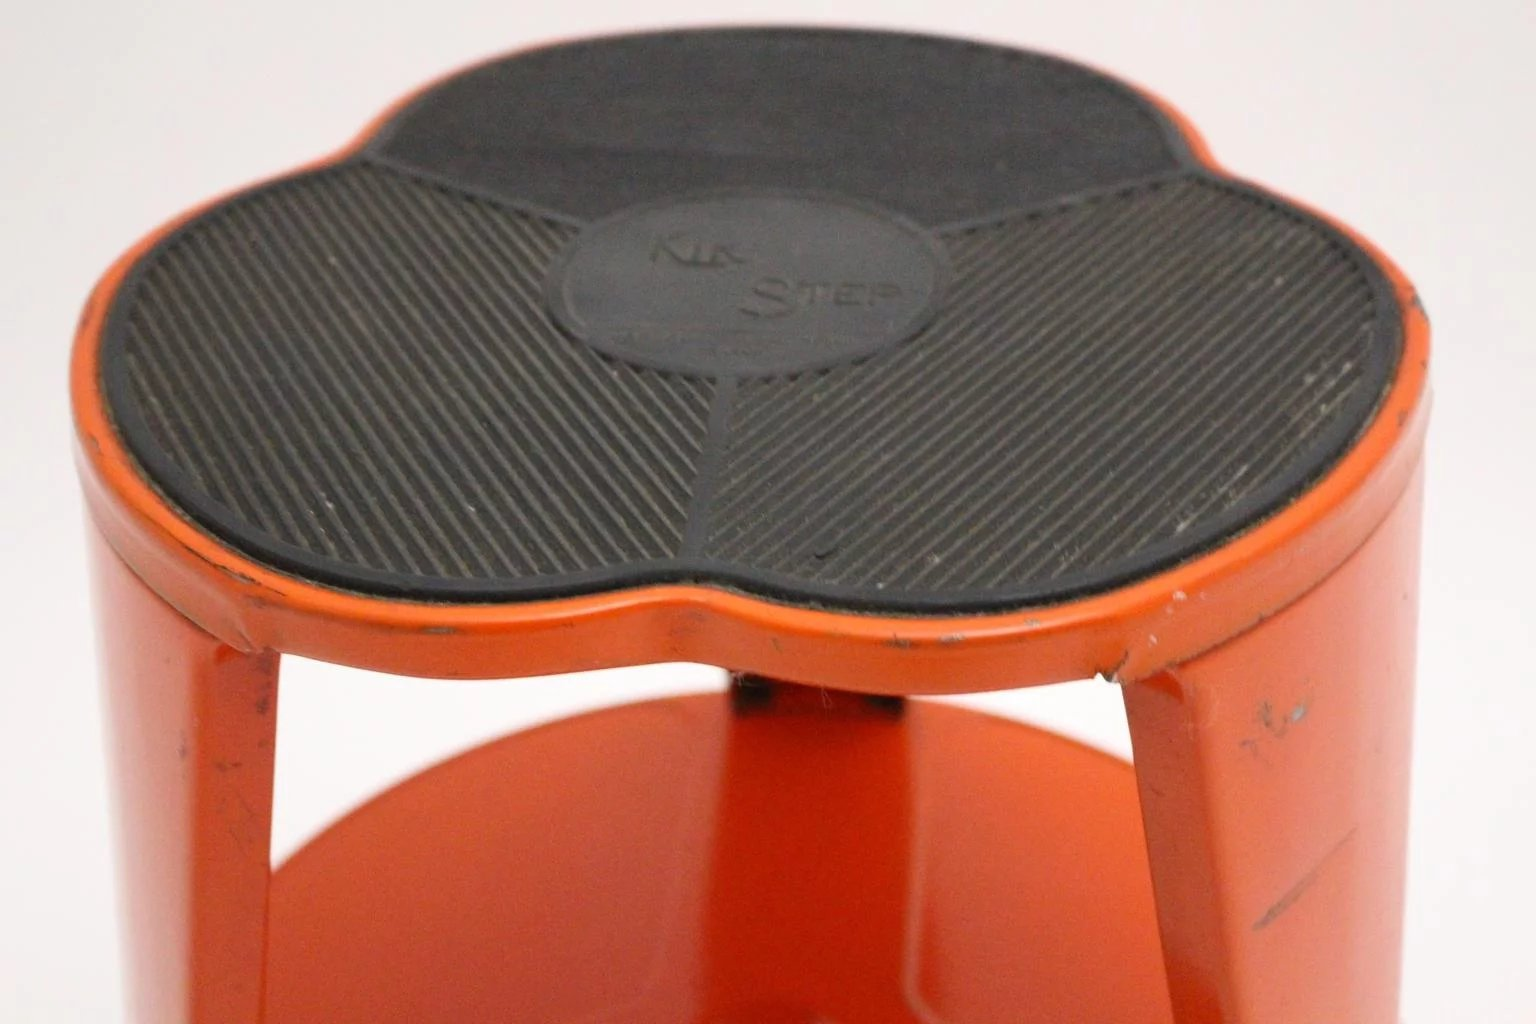 Orange Kik Step Stool By Marc Adet Blanc Mesnil France